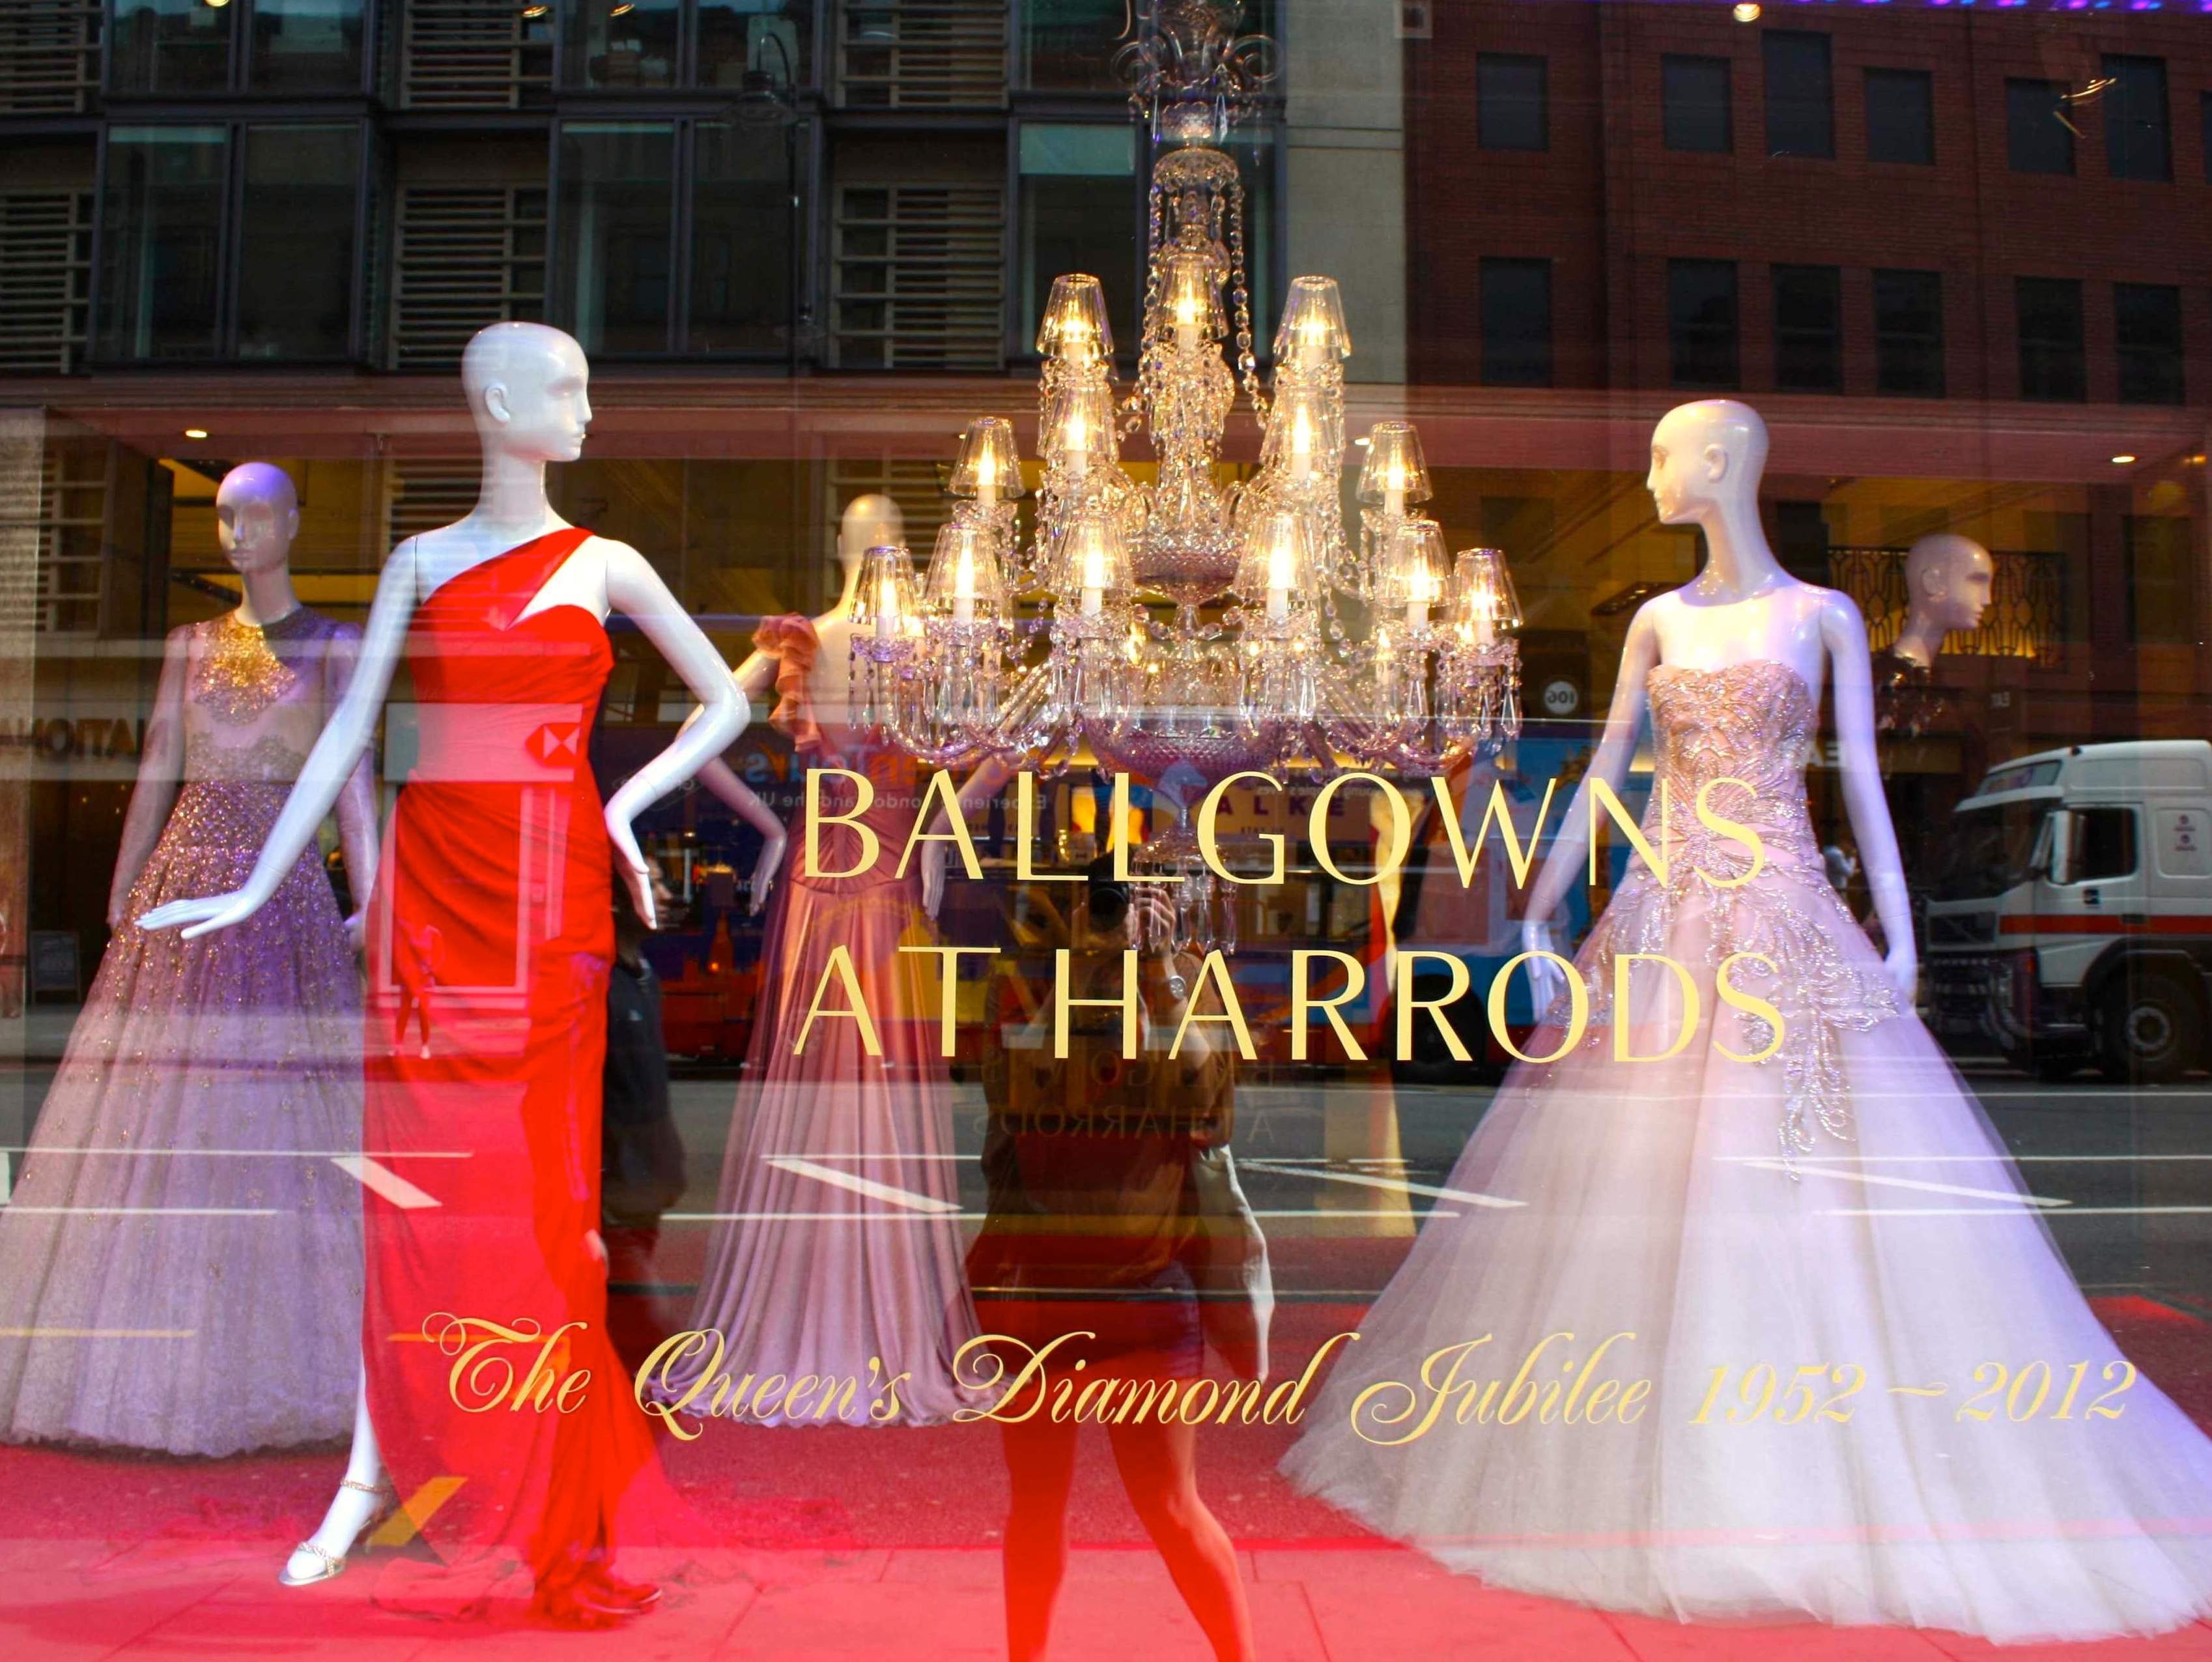 Ballgowns at Harrods reflection